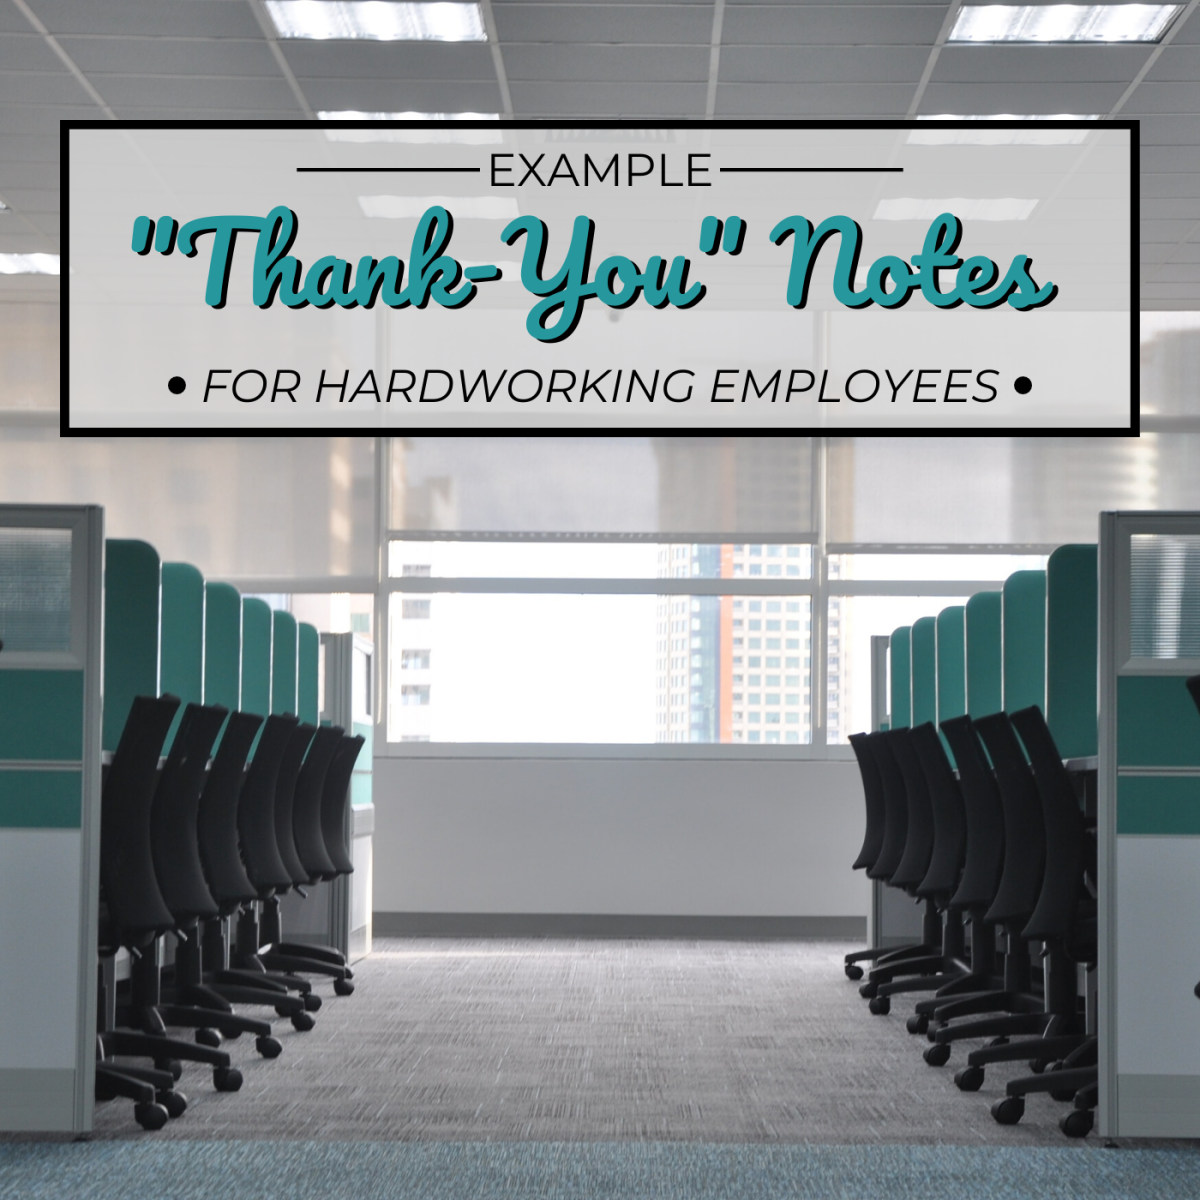 Motivate your best employees to keep working hard by recognizing their contributions with thank you notes and emails.